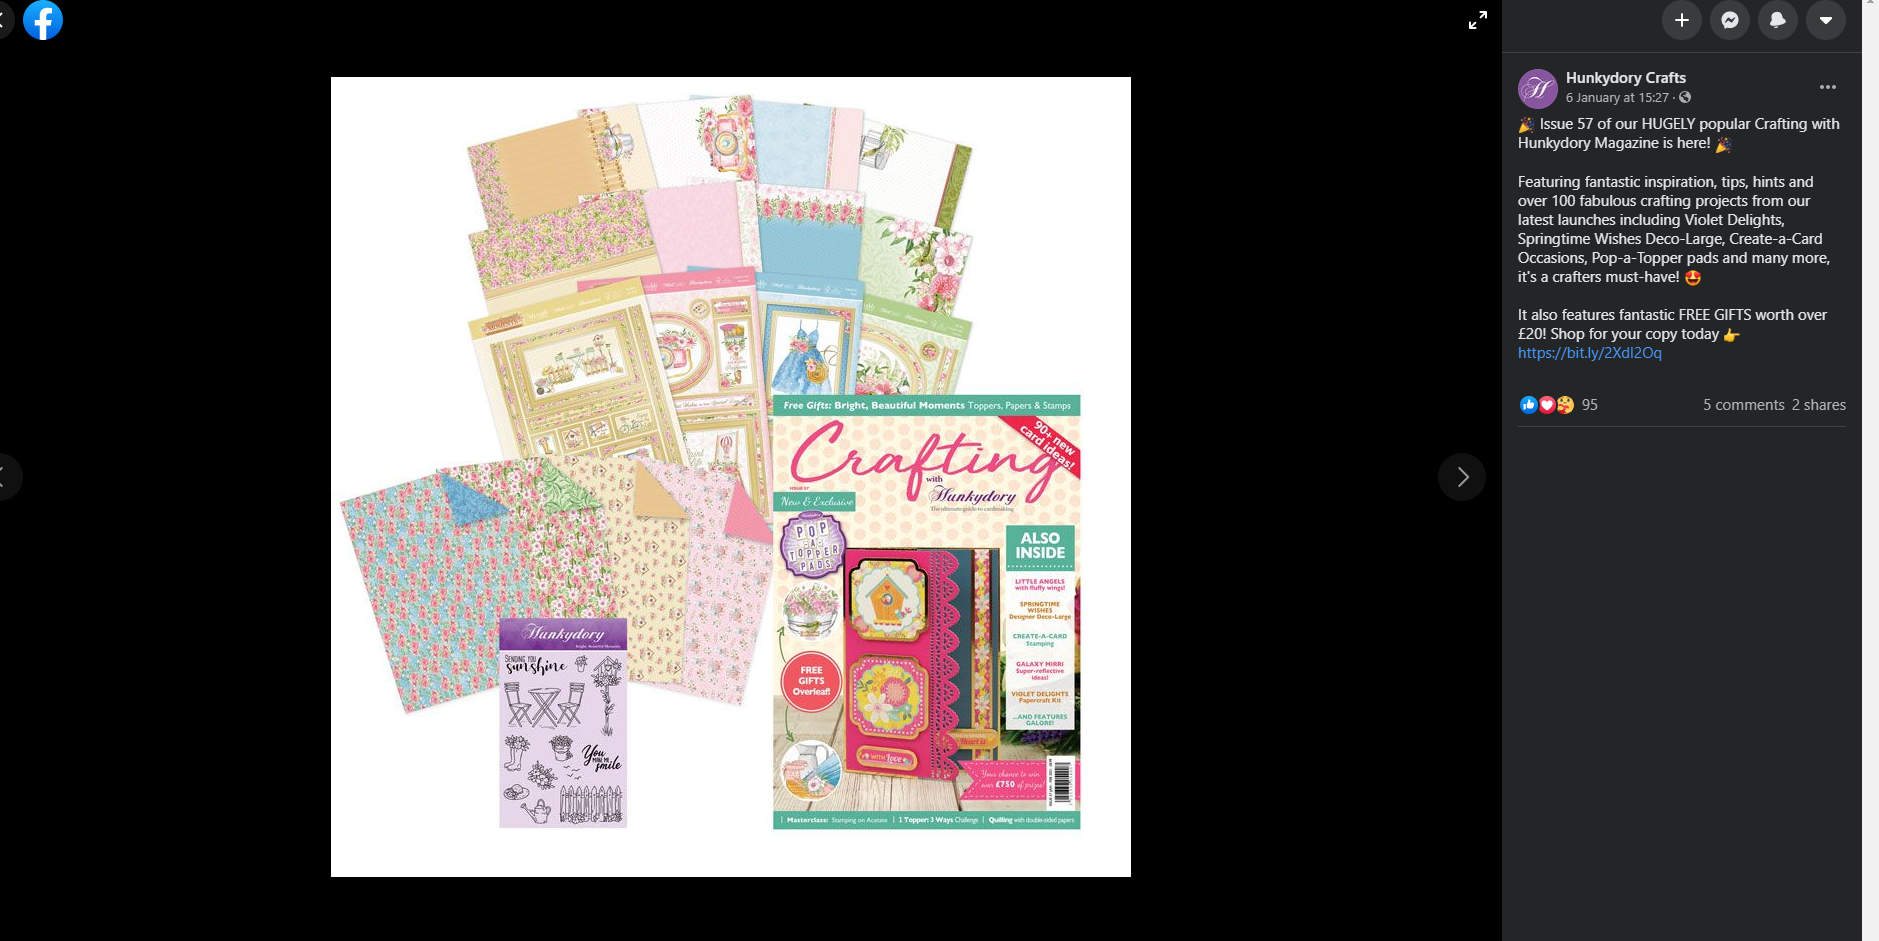 Issue-57-Crafting-with-Hunkydory-Magazine